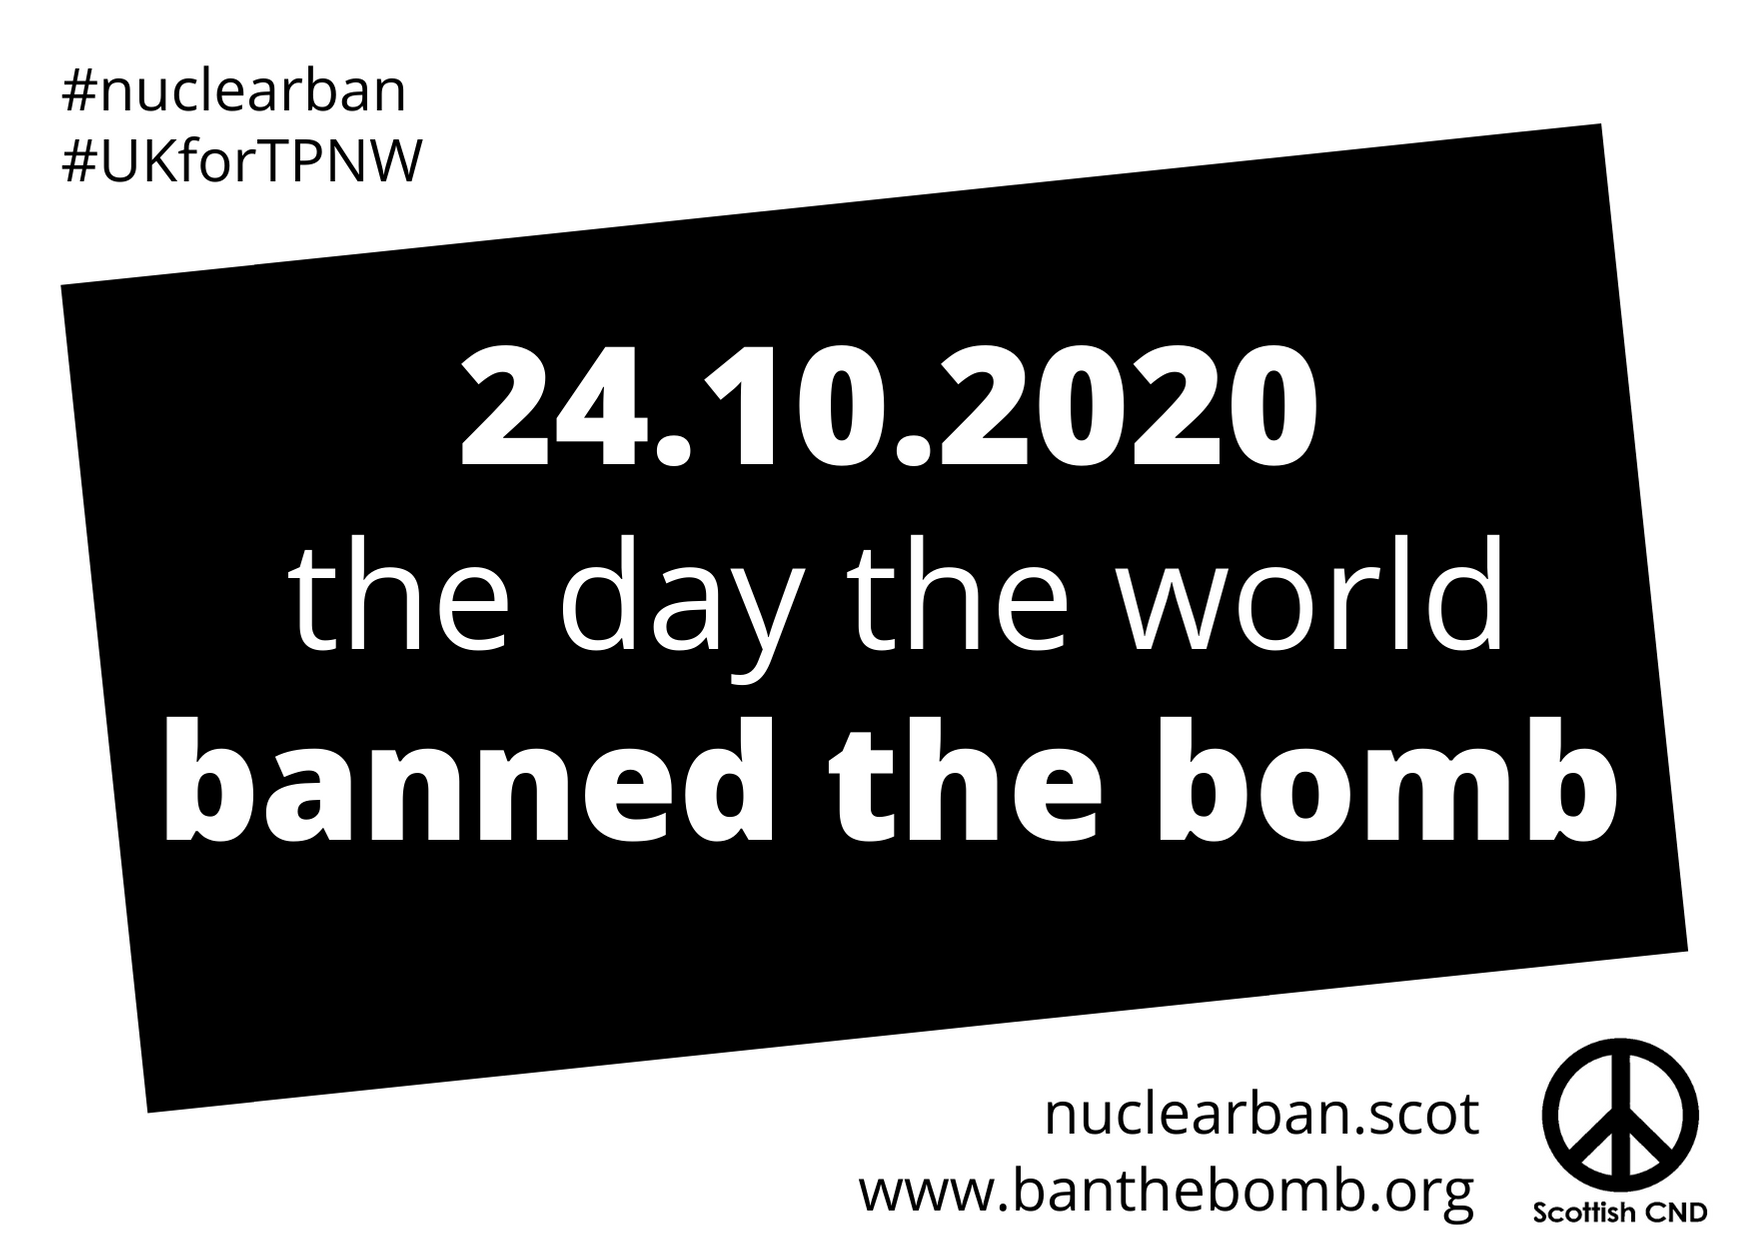 24 October 2020 - the day the world banned the bomb